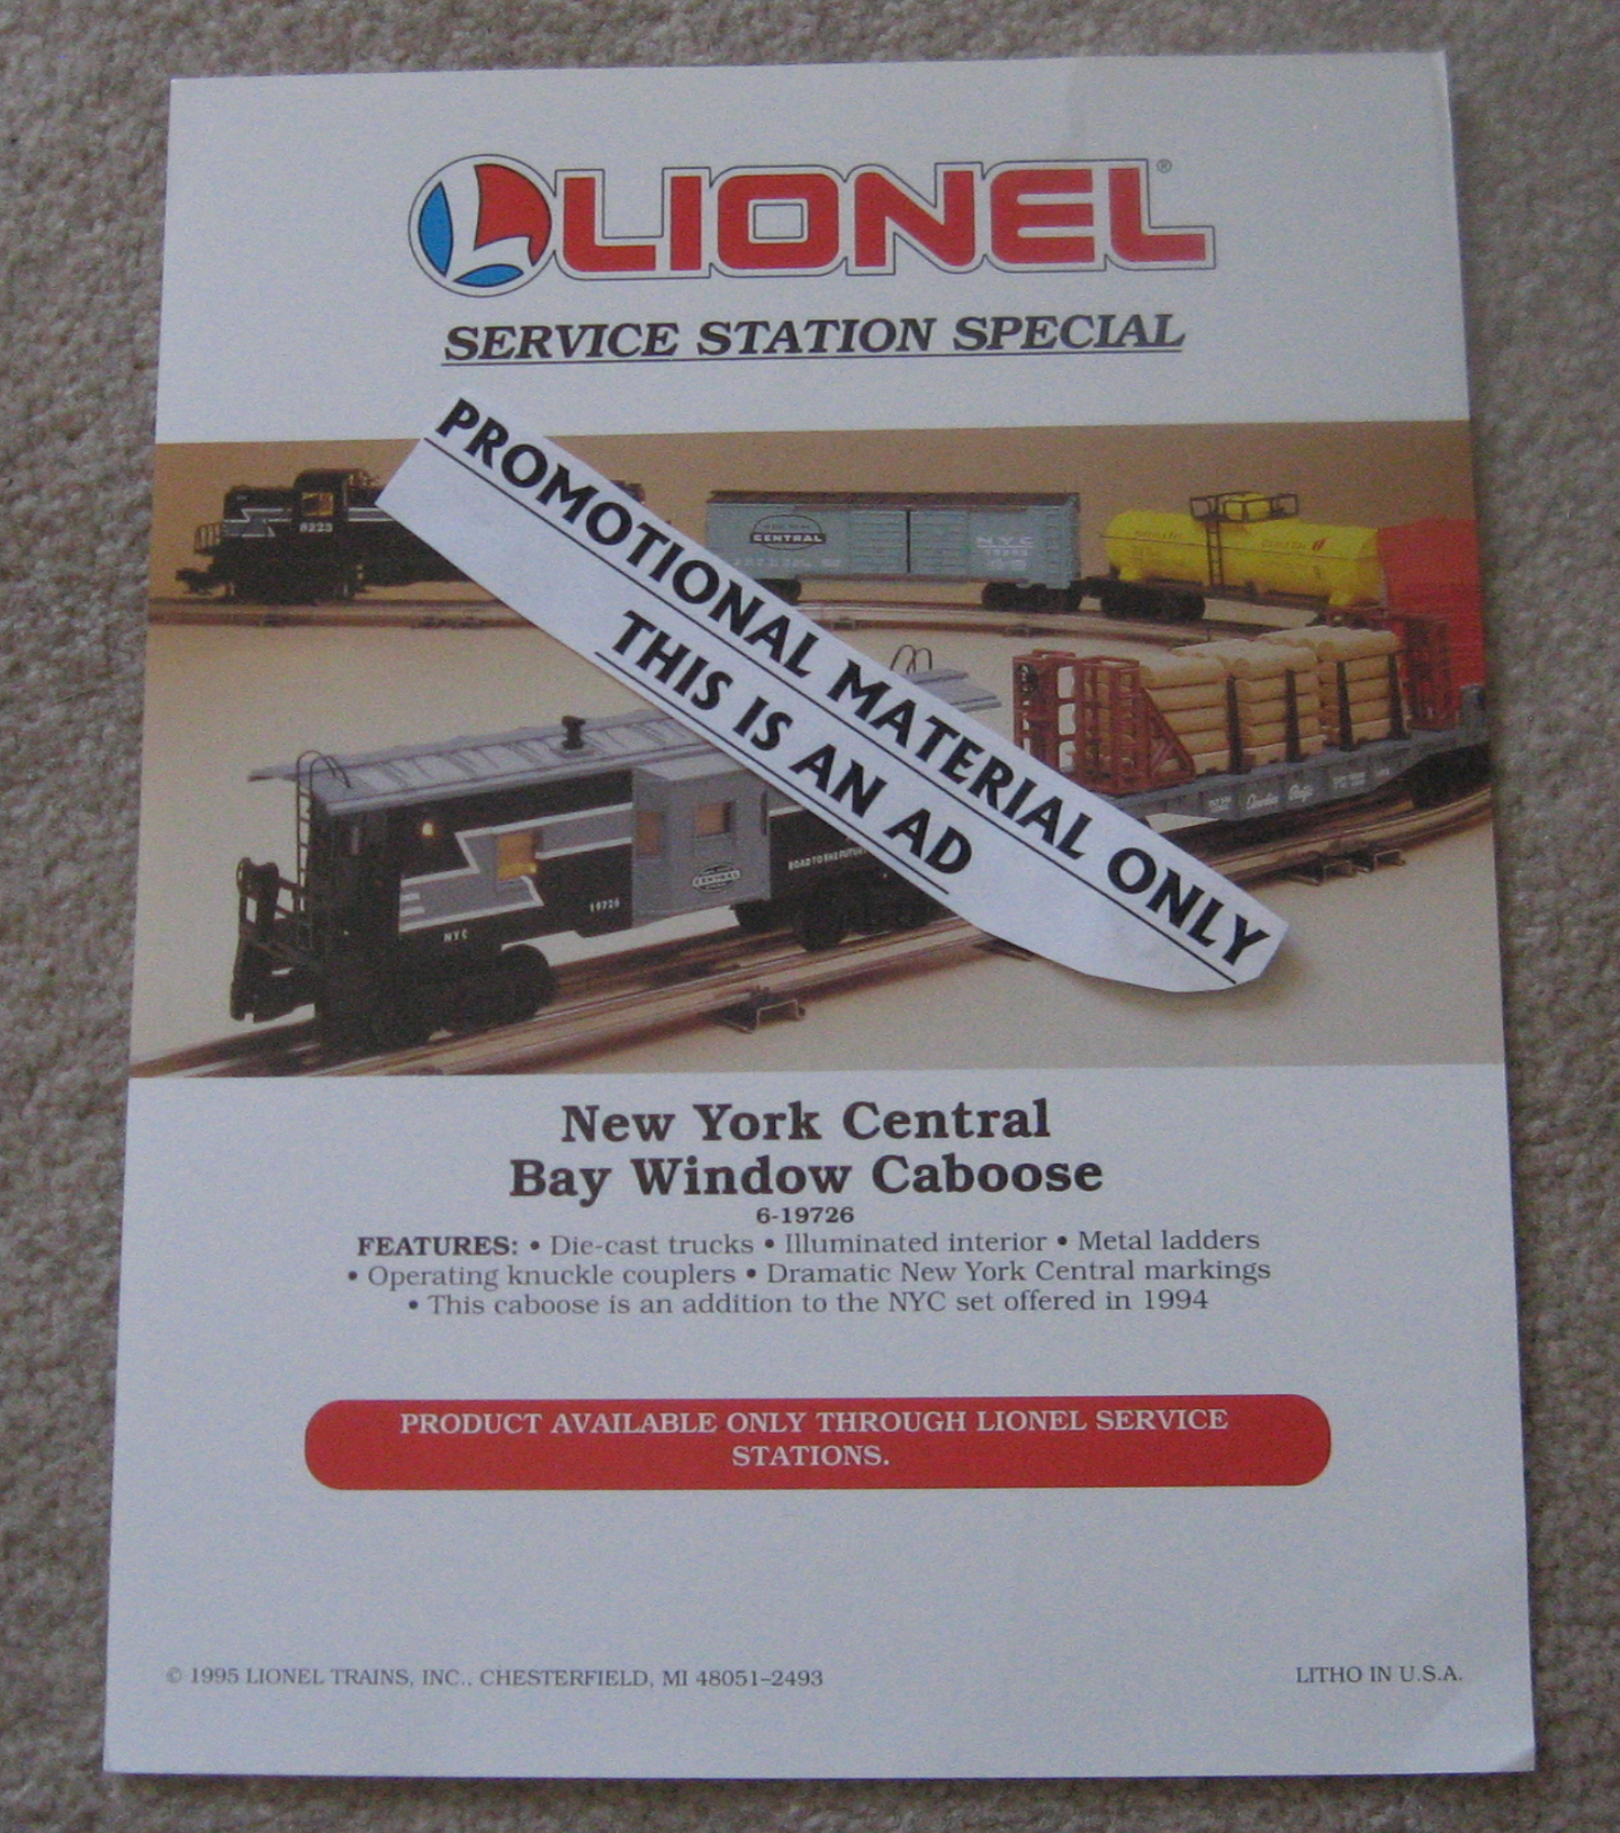 1995 Lionel Trains 6-19726 New York Central Bay Window Caboose Flyer. Mint Condition.